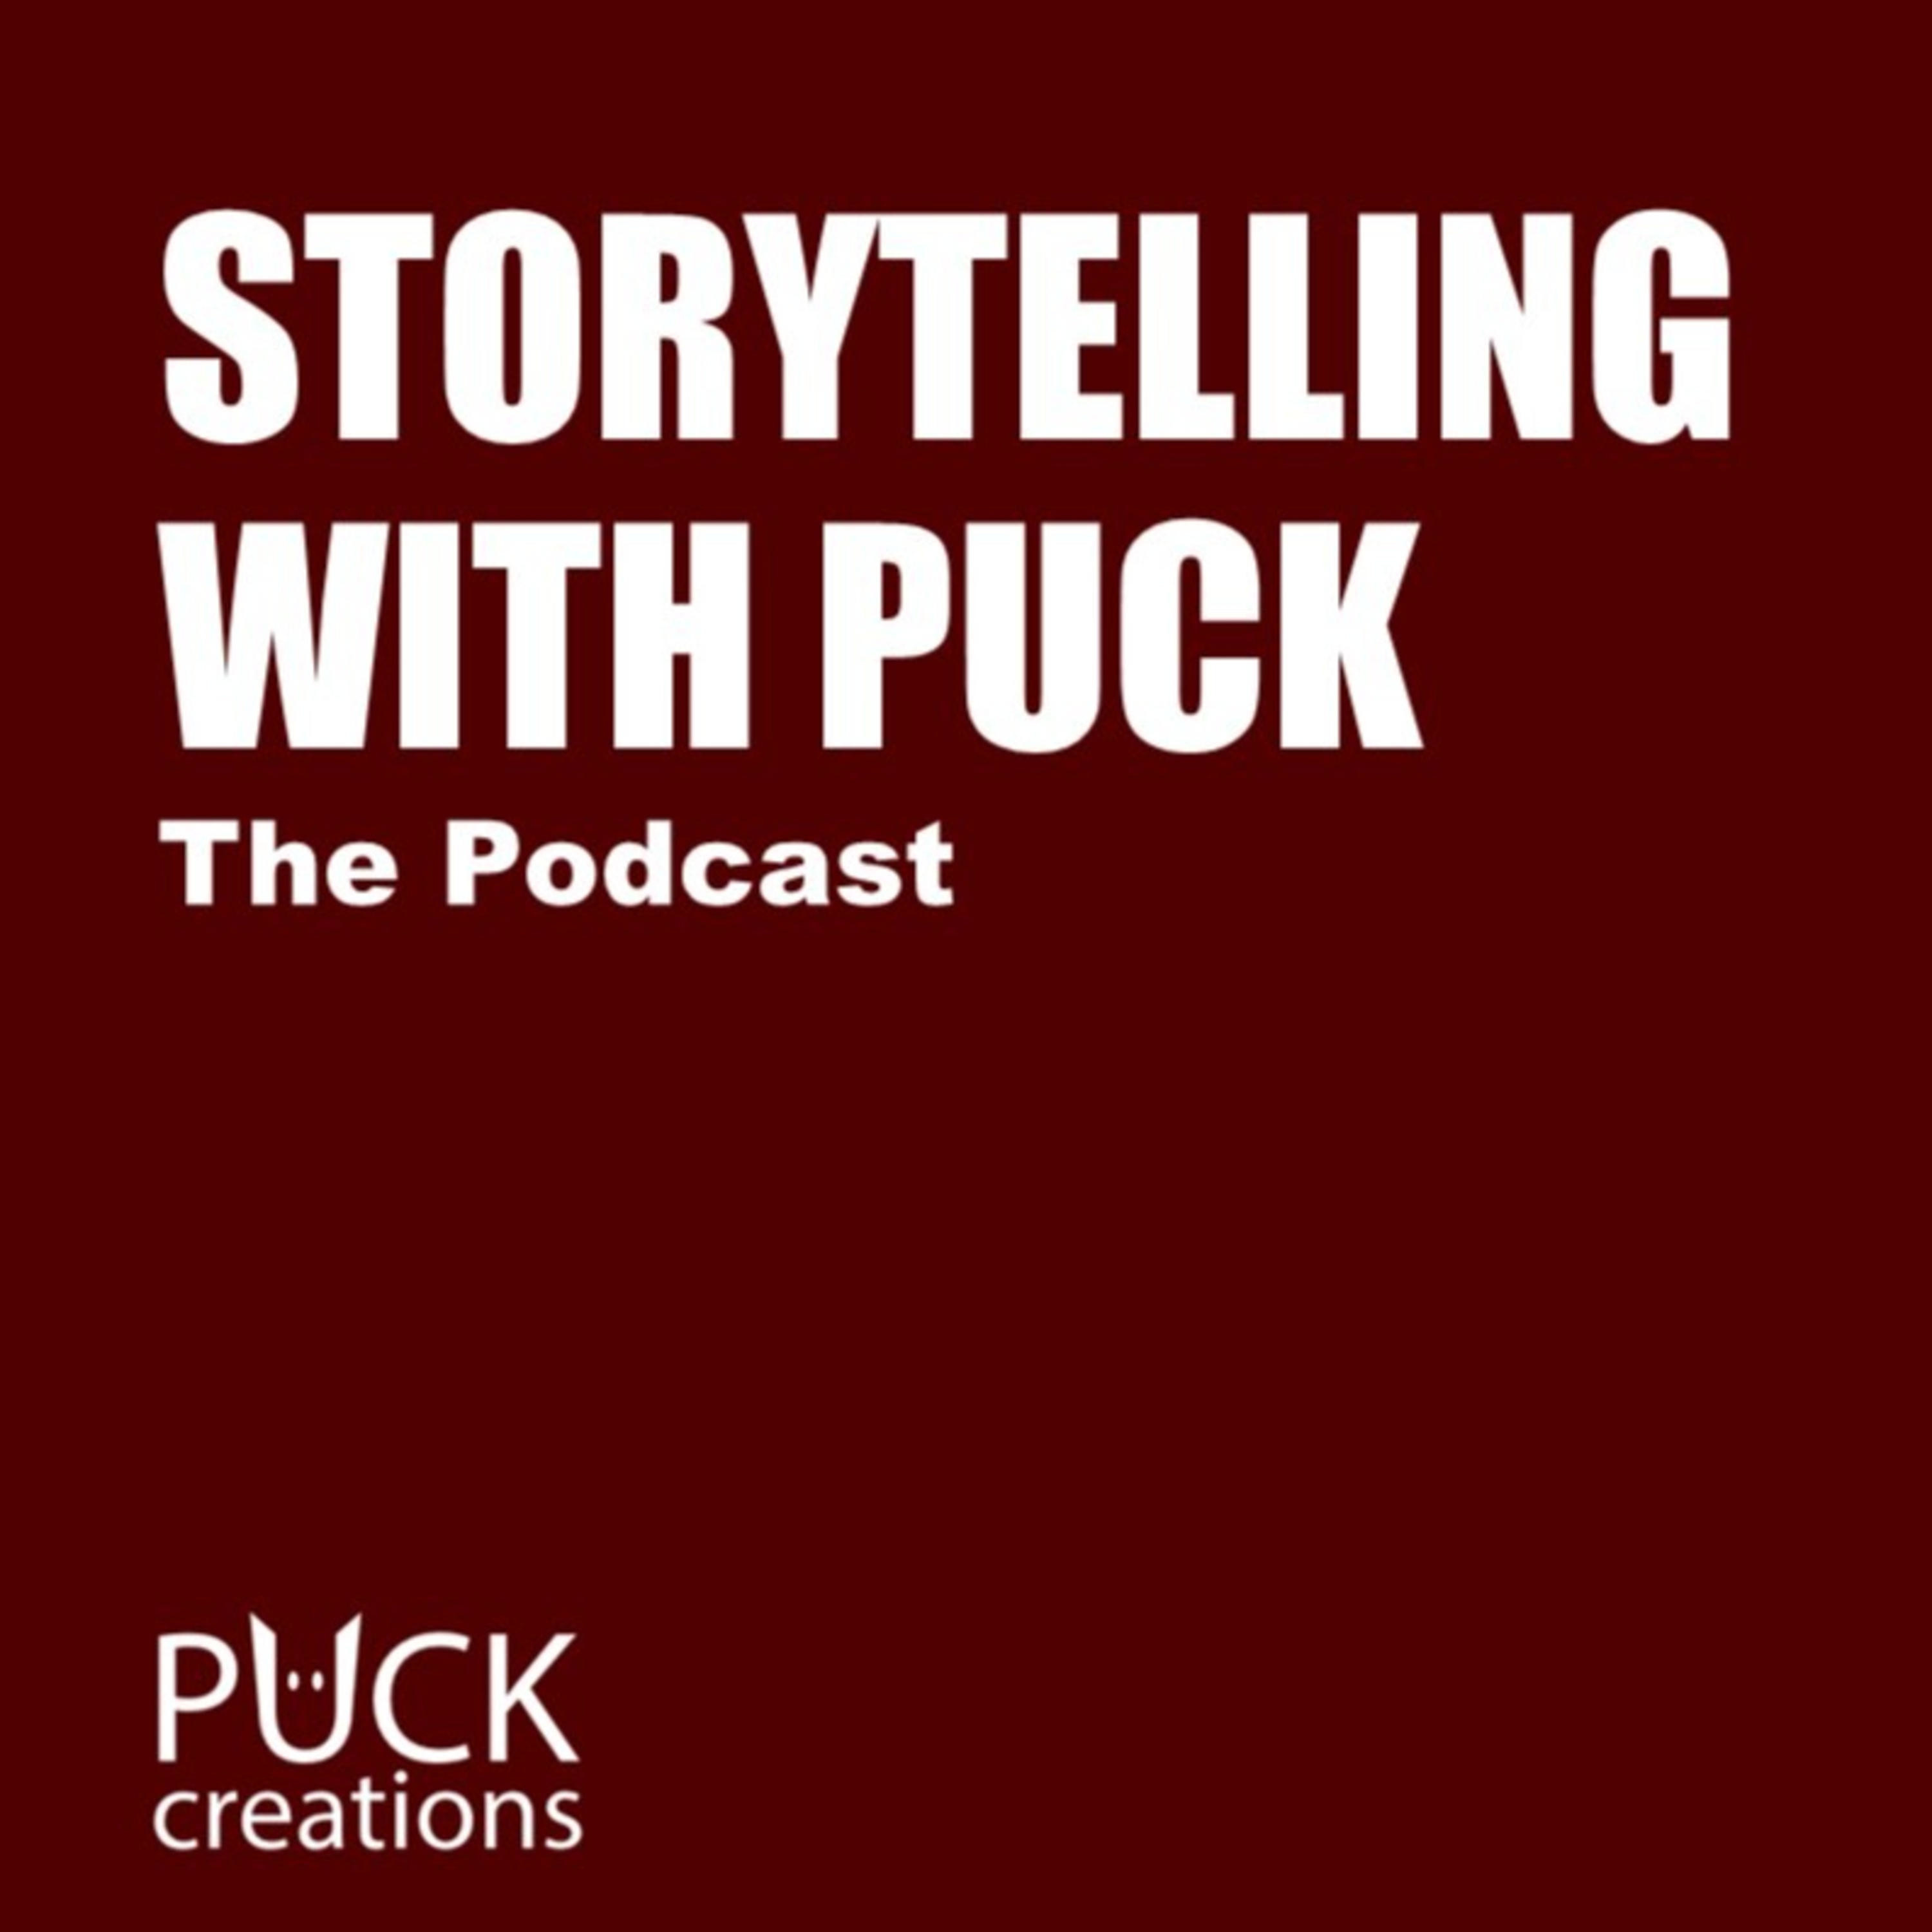 Storytelling with Puck